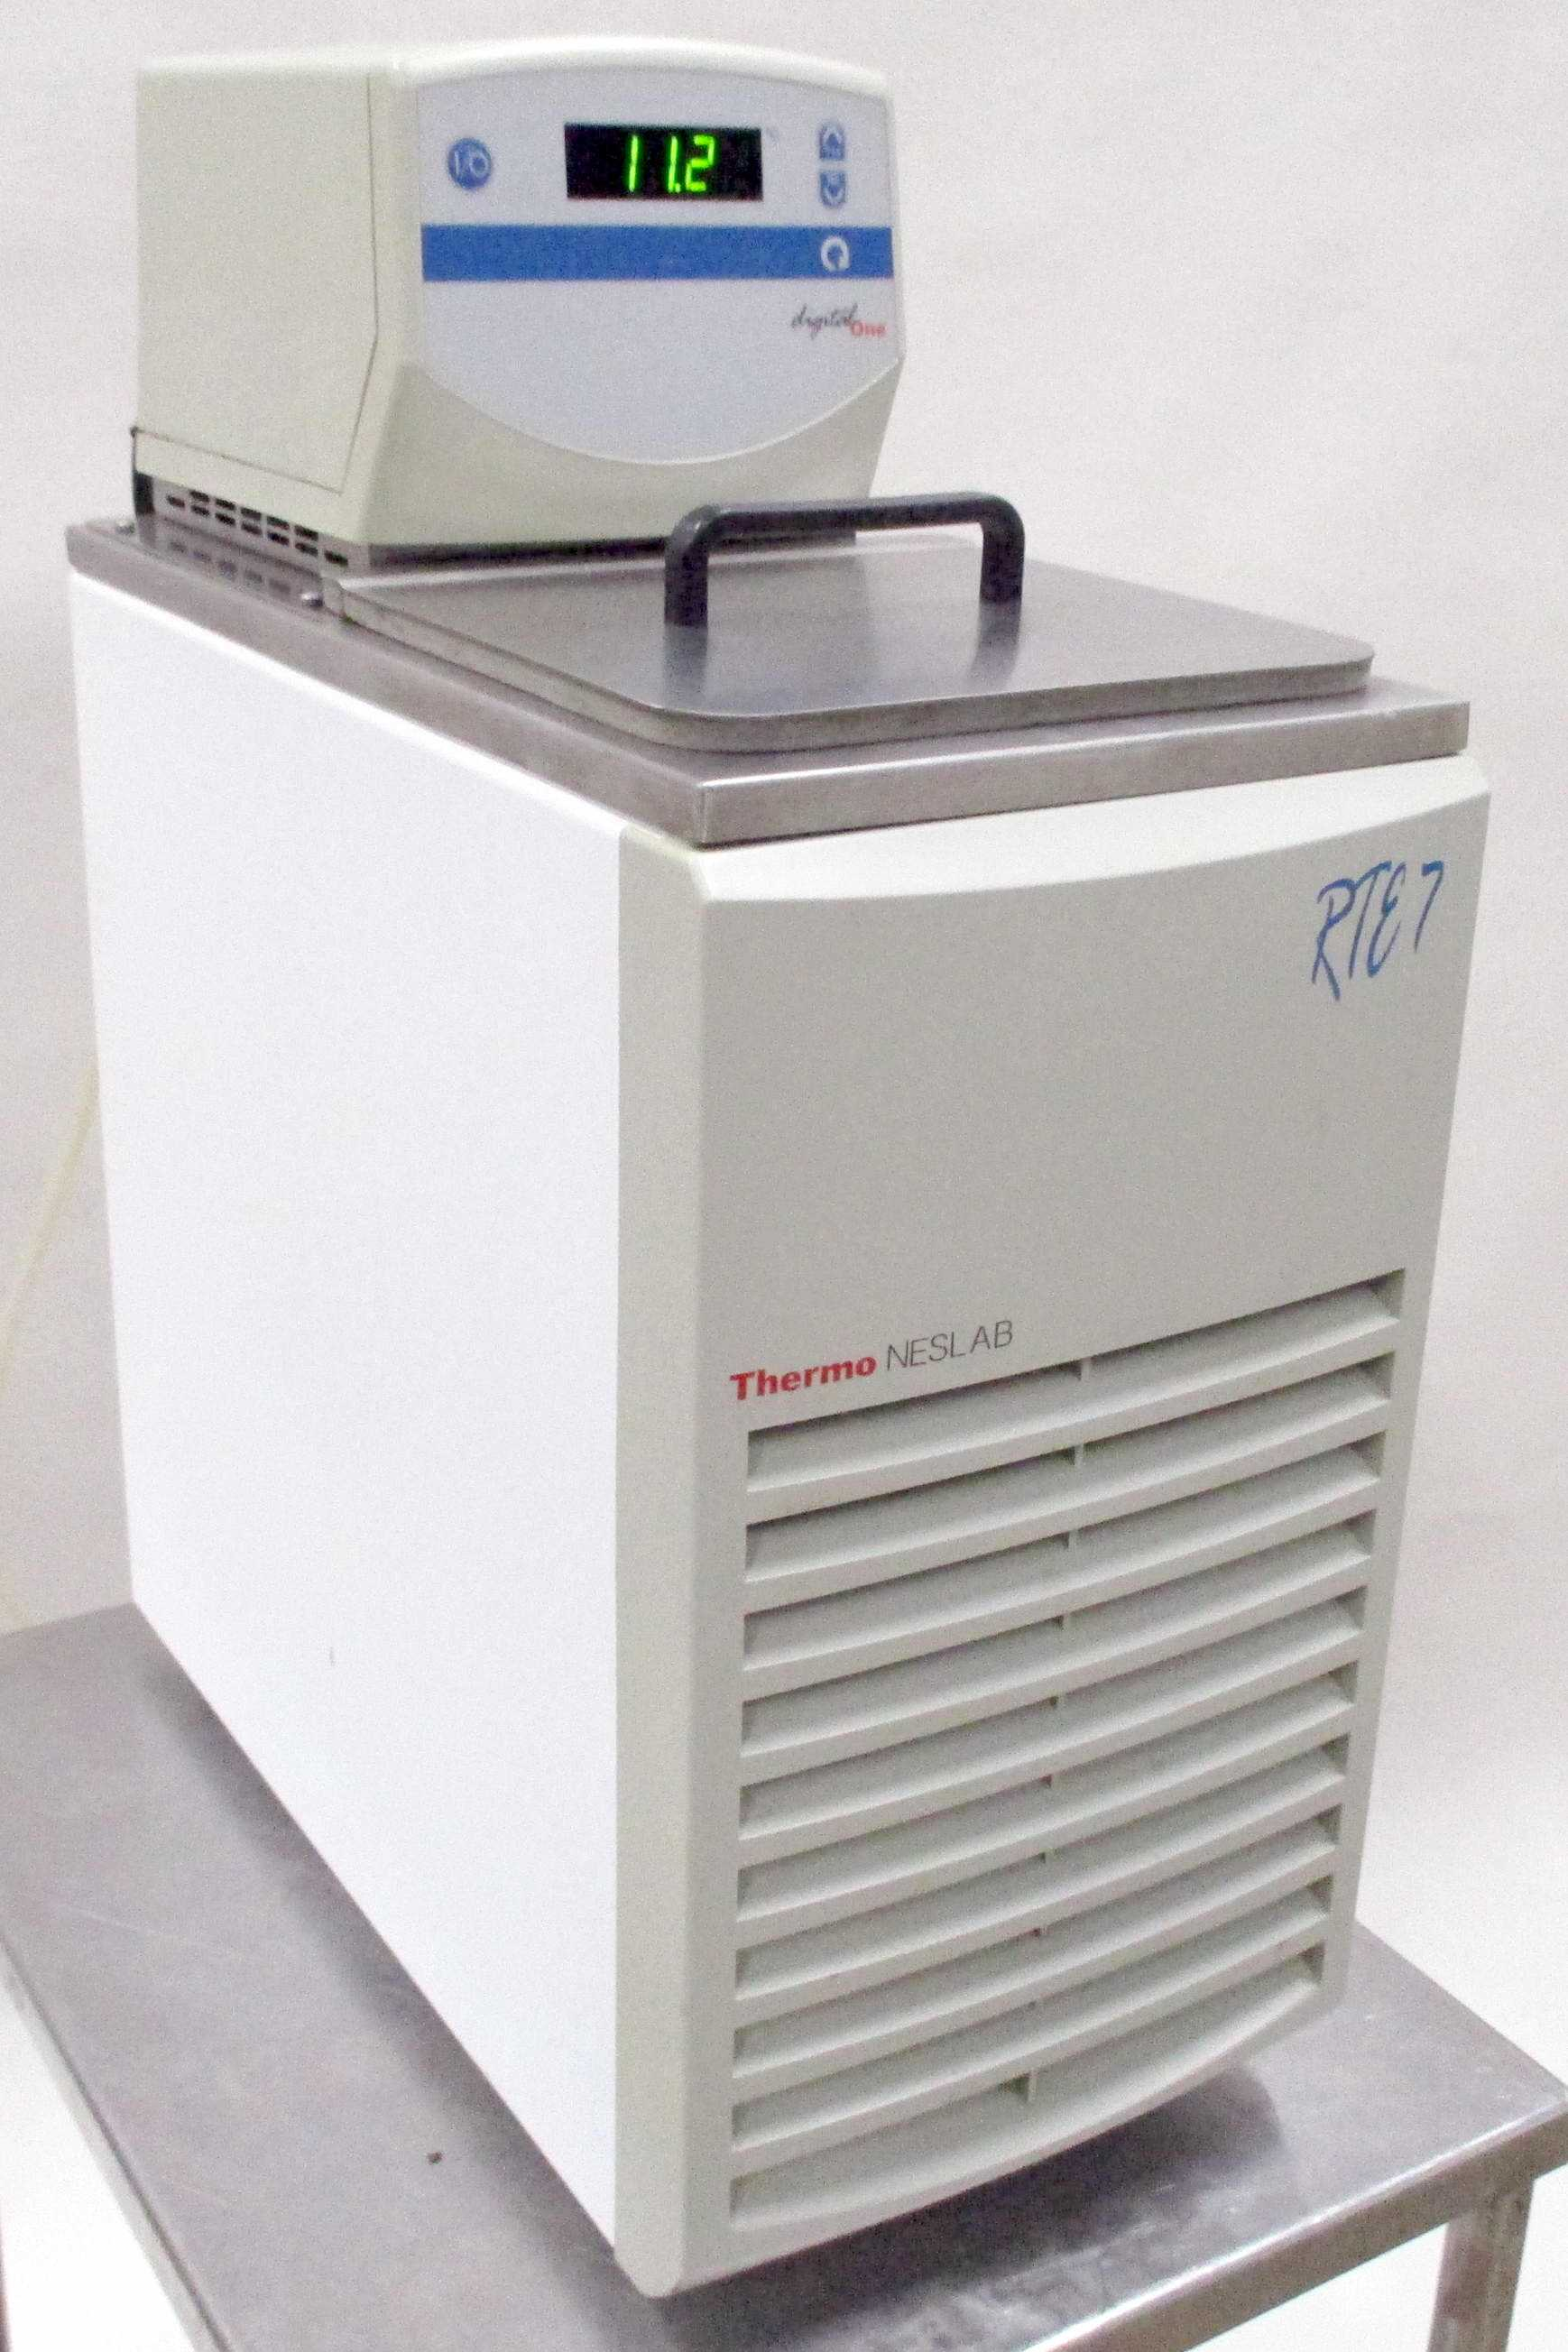 Thermo Neslab RTE-7 Digital Circulating Bath - 1